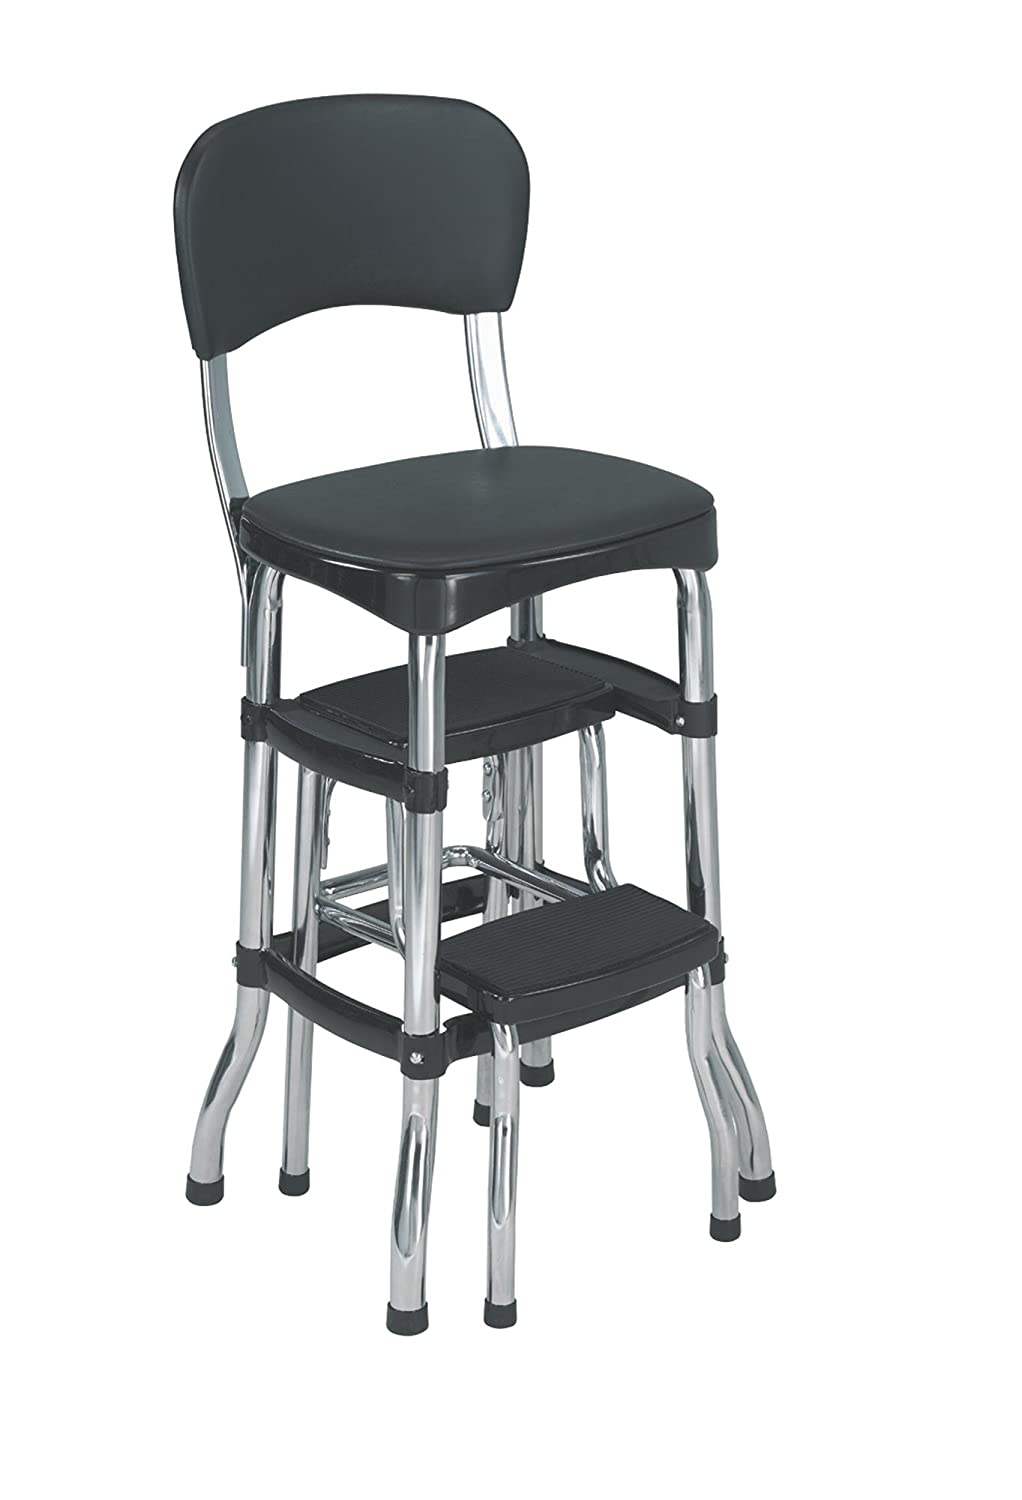 Amazon.com Cosco Black Retro Counter Chair / Step Stool Black Home Improvement  sc 1 st  Amazon.com : metal step stool chair - islam-shia.org